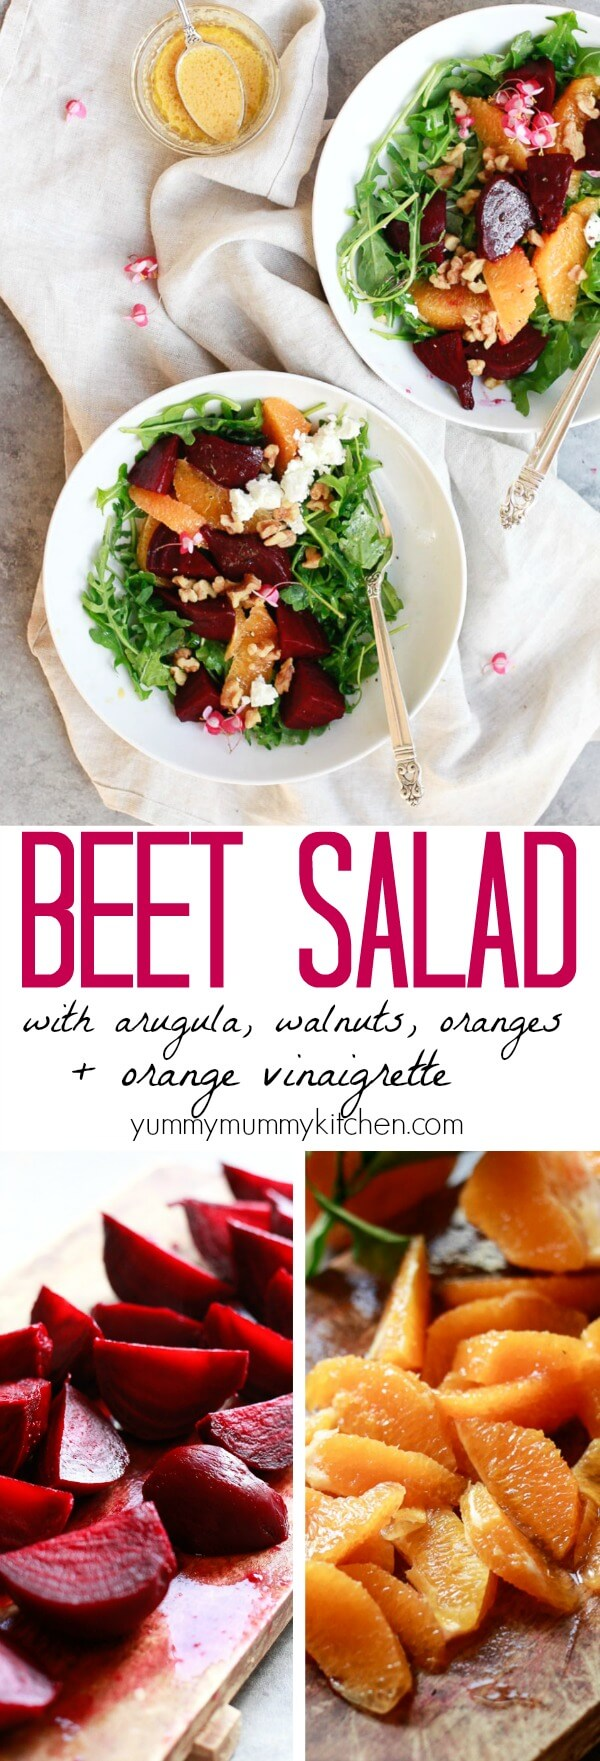 The best beet salad recipe! Winter salad of roasted or pressure cooked Instant Pot beets, arugula, orange segments, walnuts, and goat cheese with homemade beet salad dressing. This delicious winter salad is perfect for Thanksgiving, Christmas, or winter lunch meal prep. #vegetarian #vegan #glutenfree